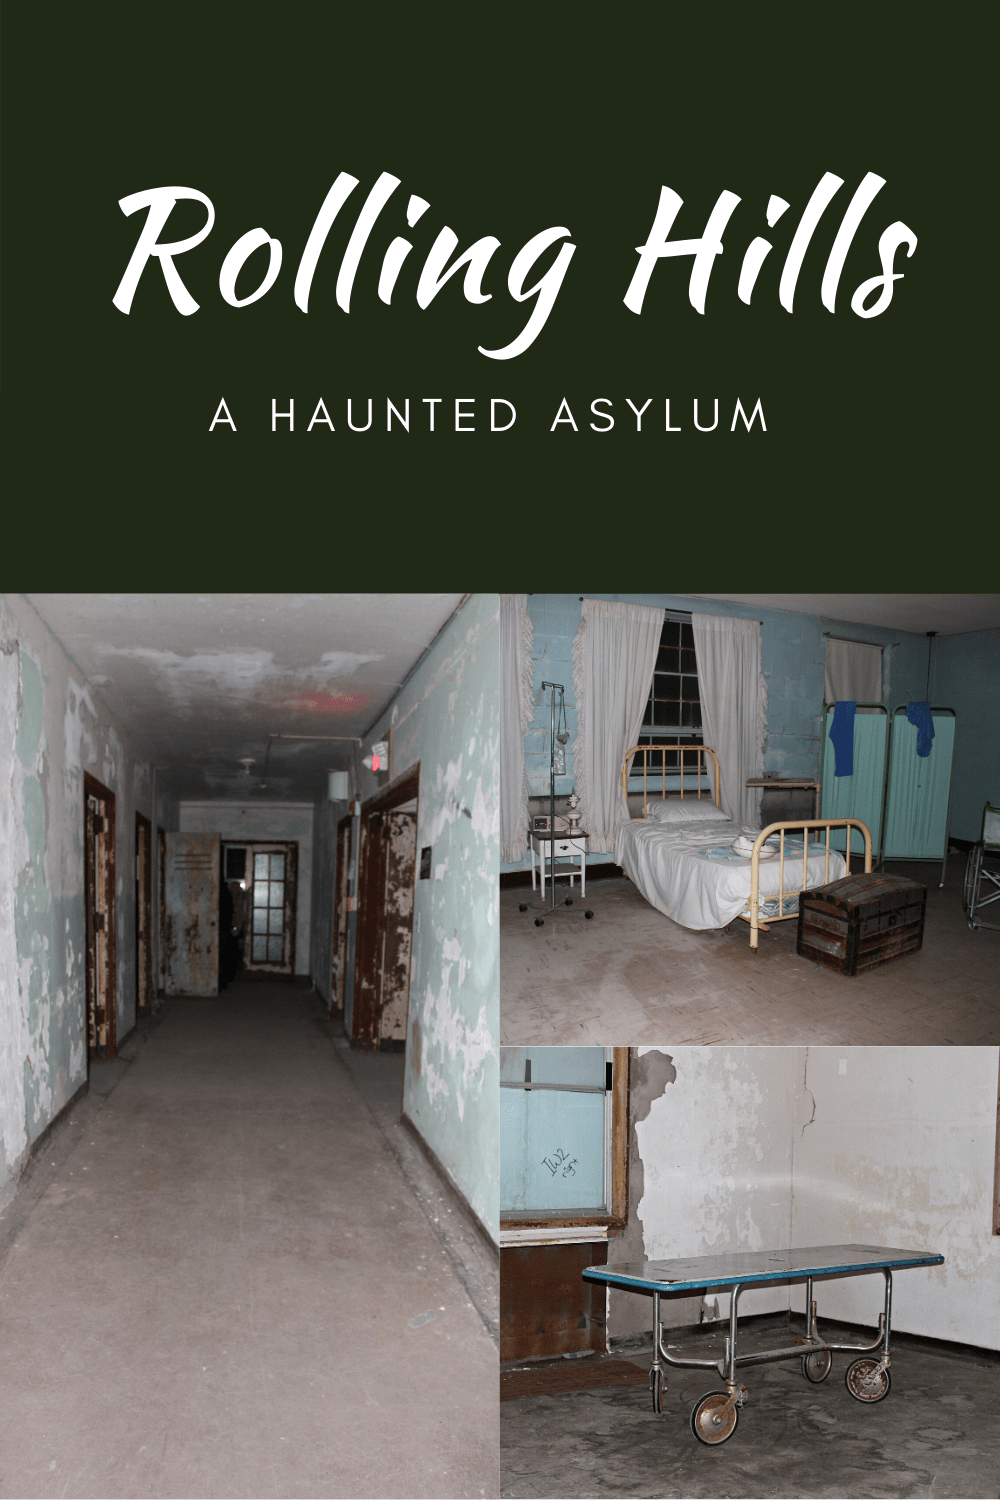 A haunted asylum sitting in a small, secluded town, Rolling Hills functioned for many years as a poor house for those who couldn't care for themselves. It is believed that many never left!